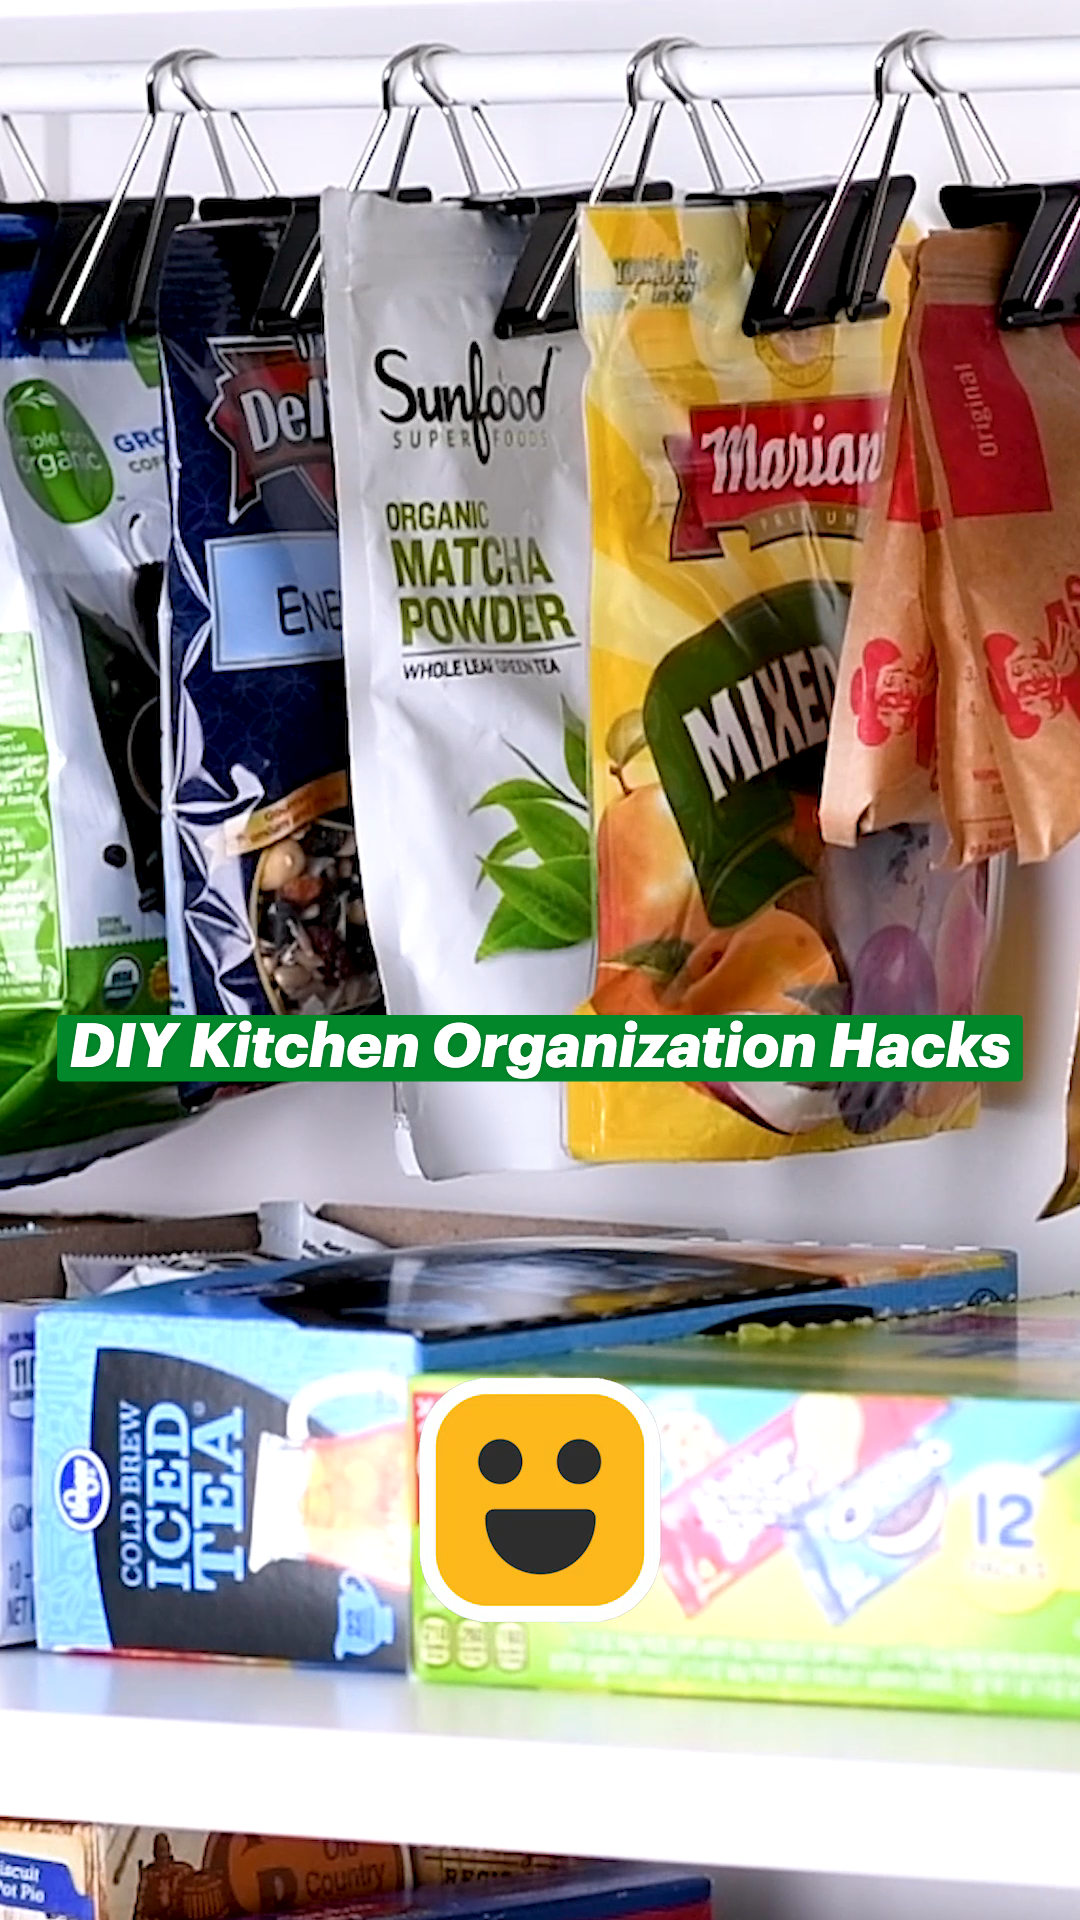 DIY Kitchen Organization Hacks